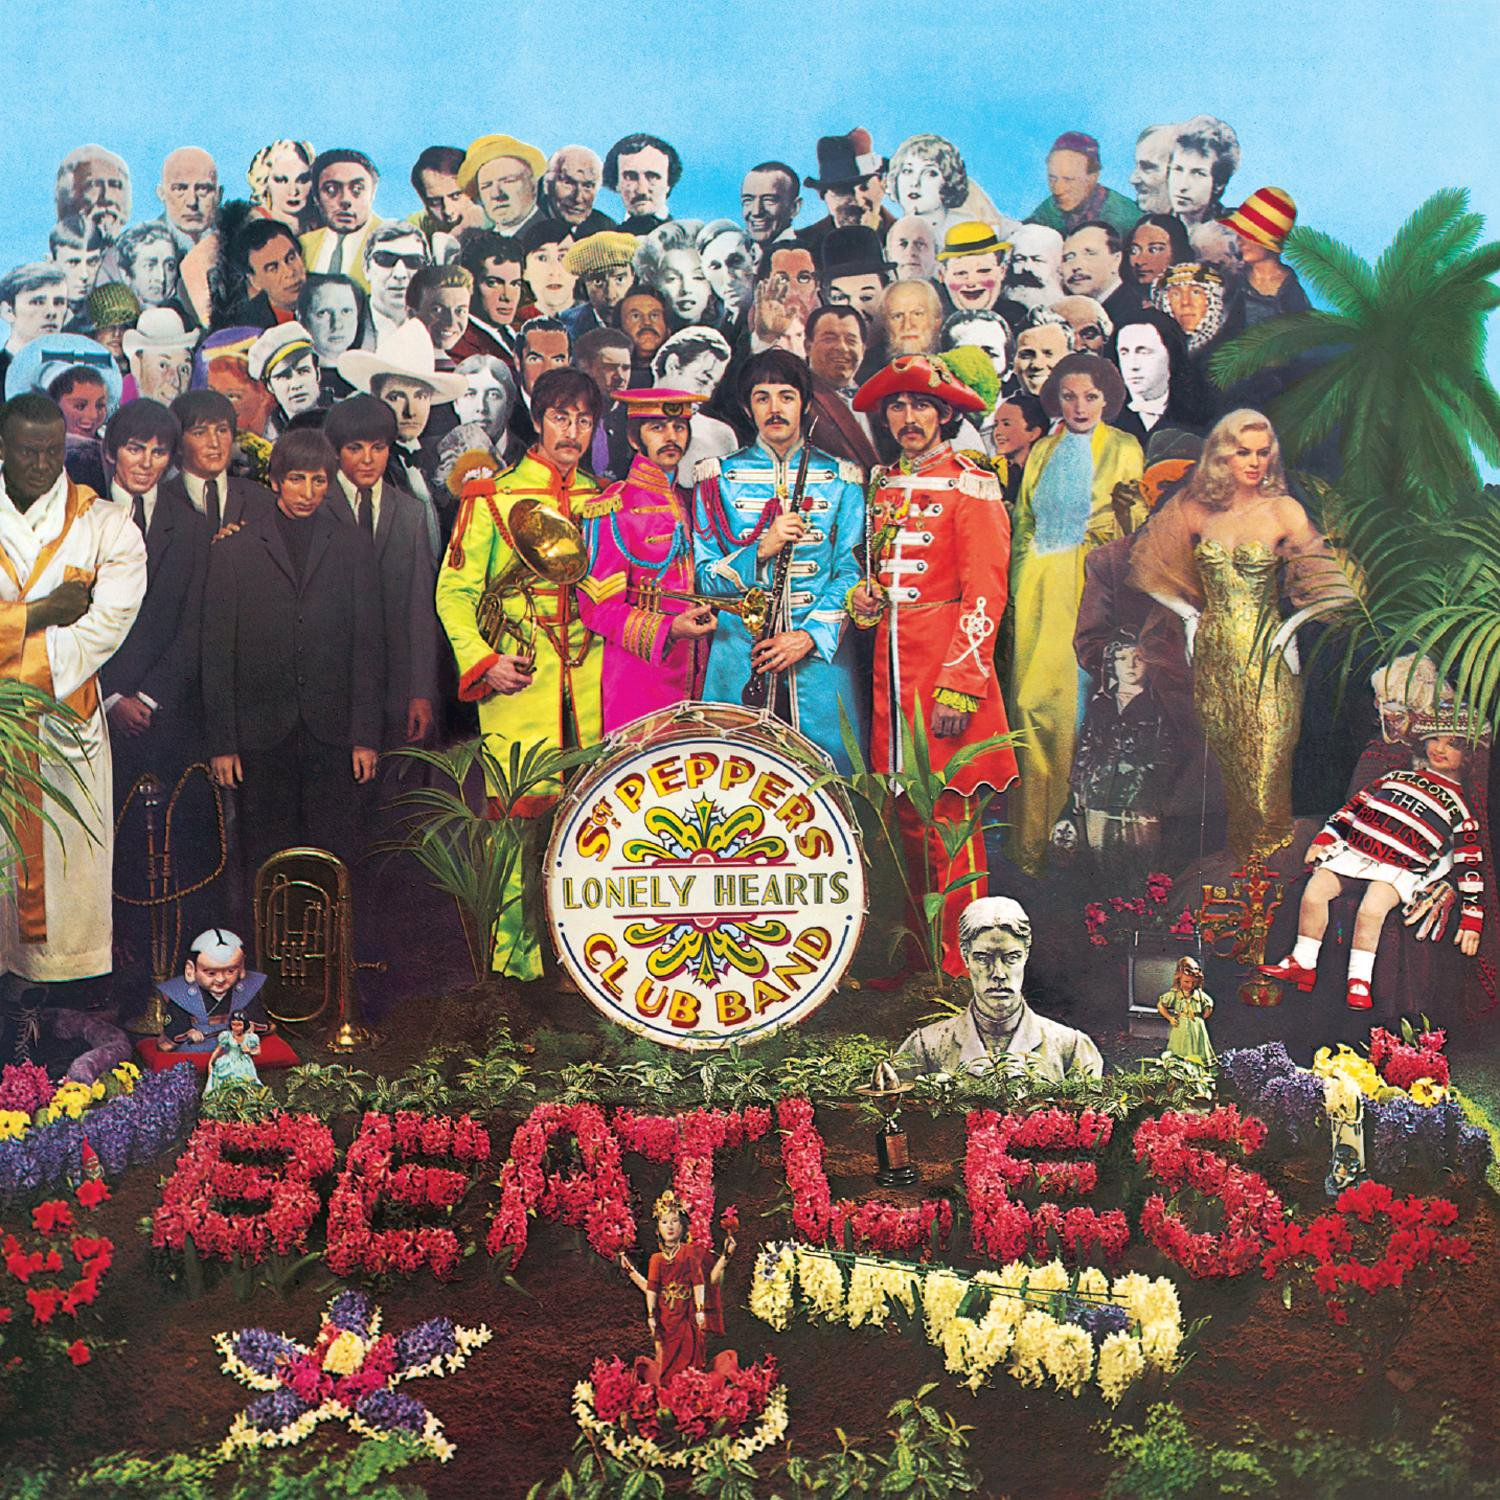 The Beatles – Sgt. Pepper's Lonely Hearts Club Band (REISSUE REMASTERED LP) (2017) [FLAC]